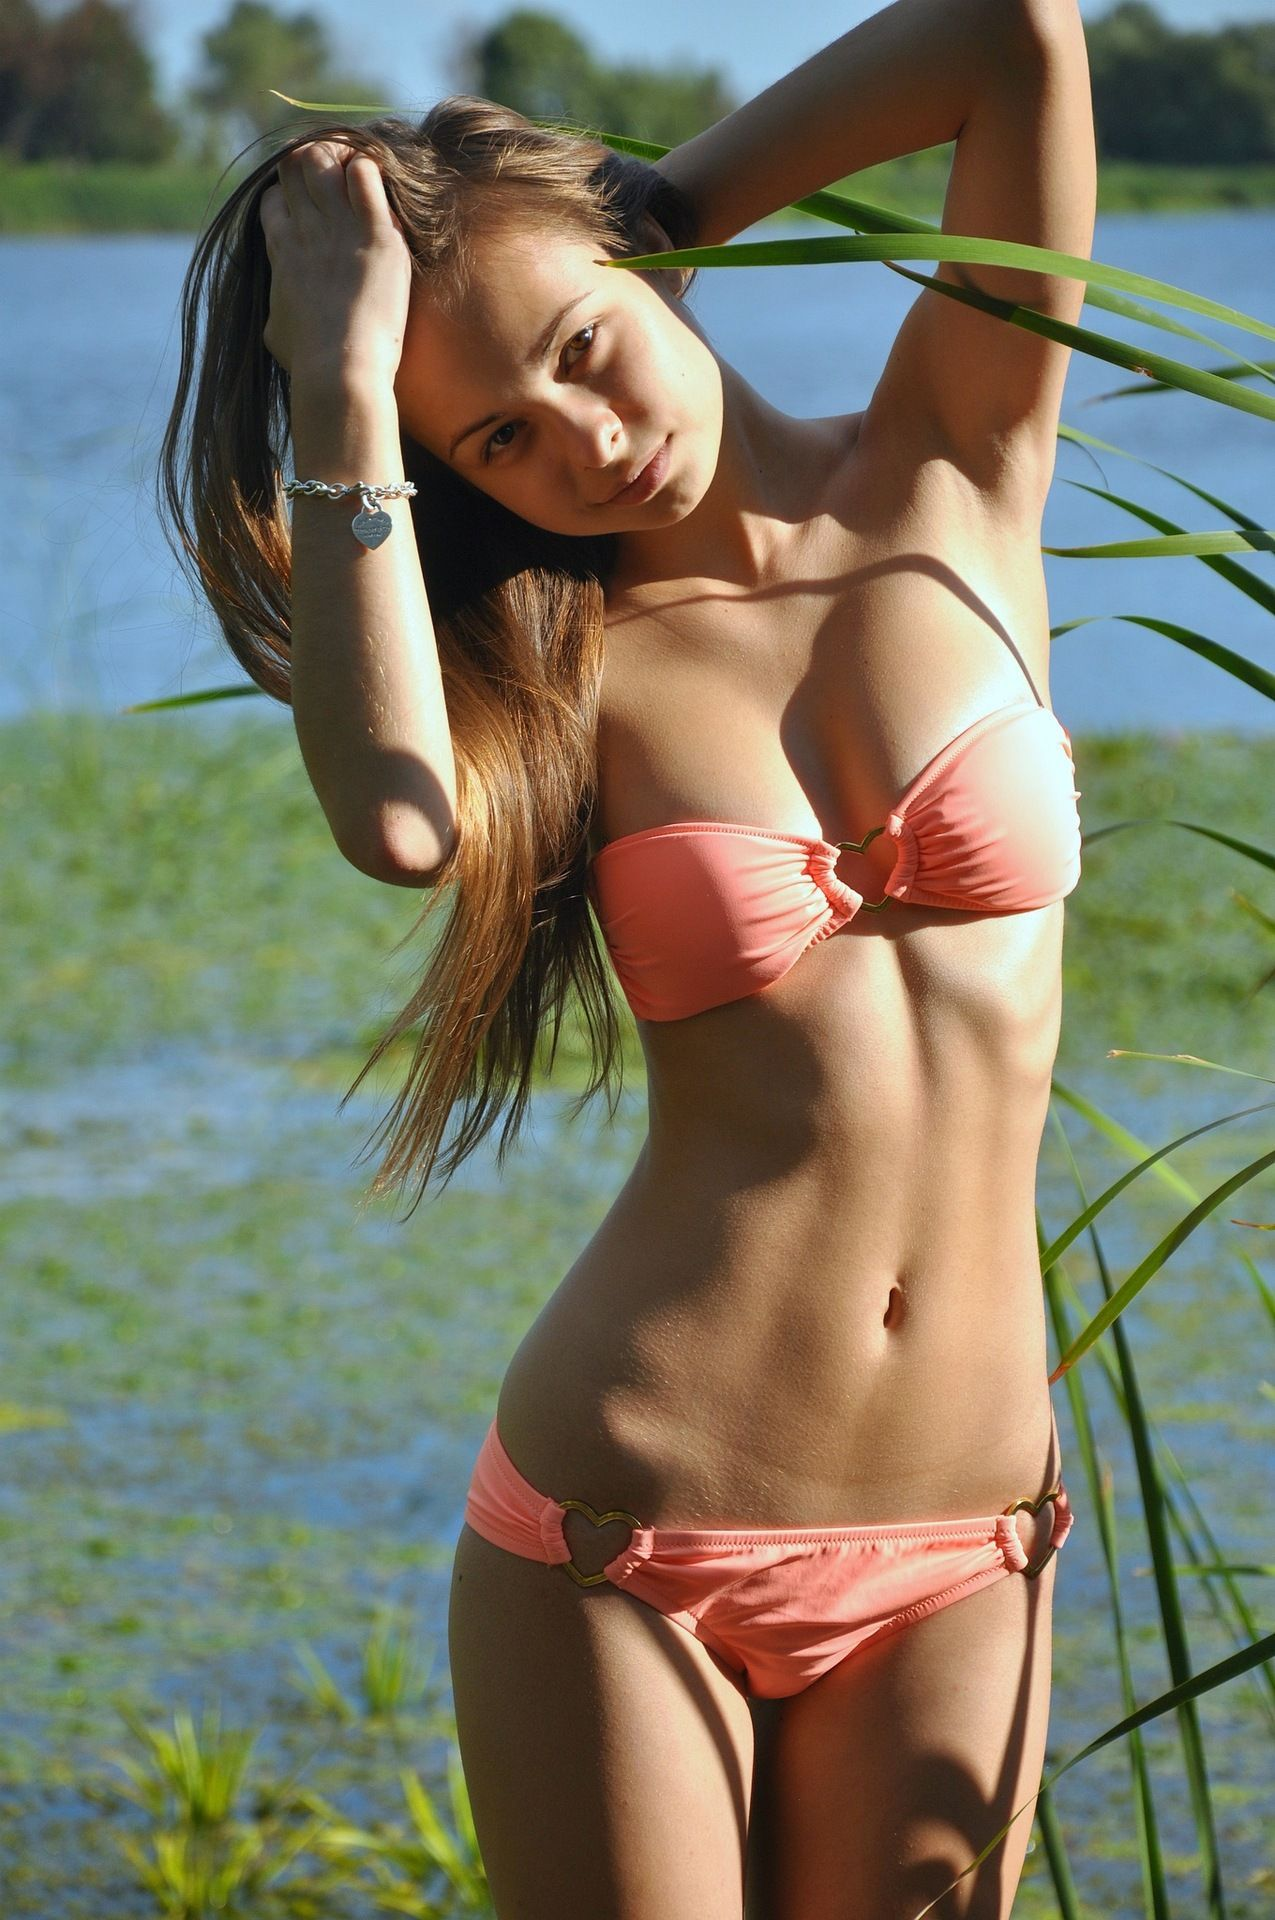 my hot babe - young and sexy bikini babe http://www